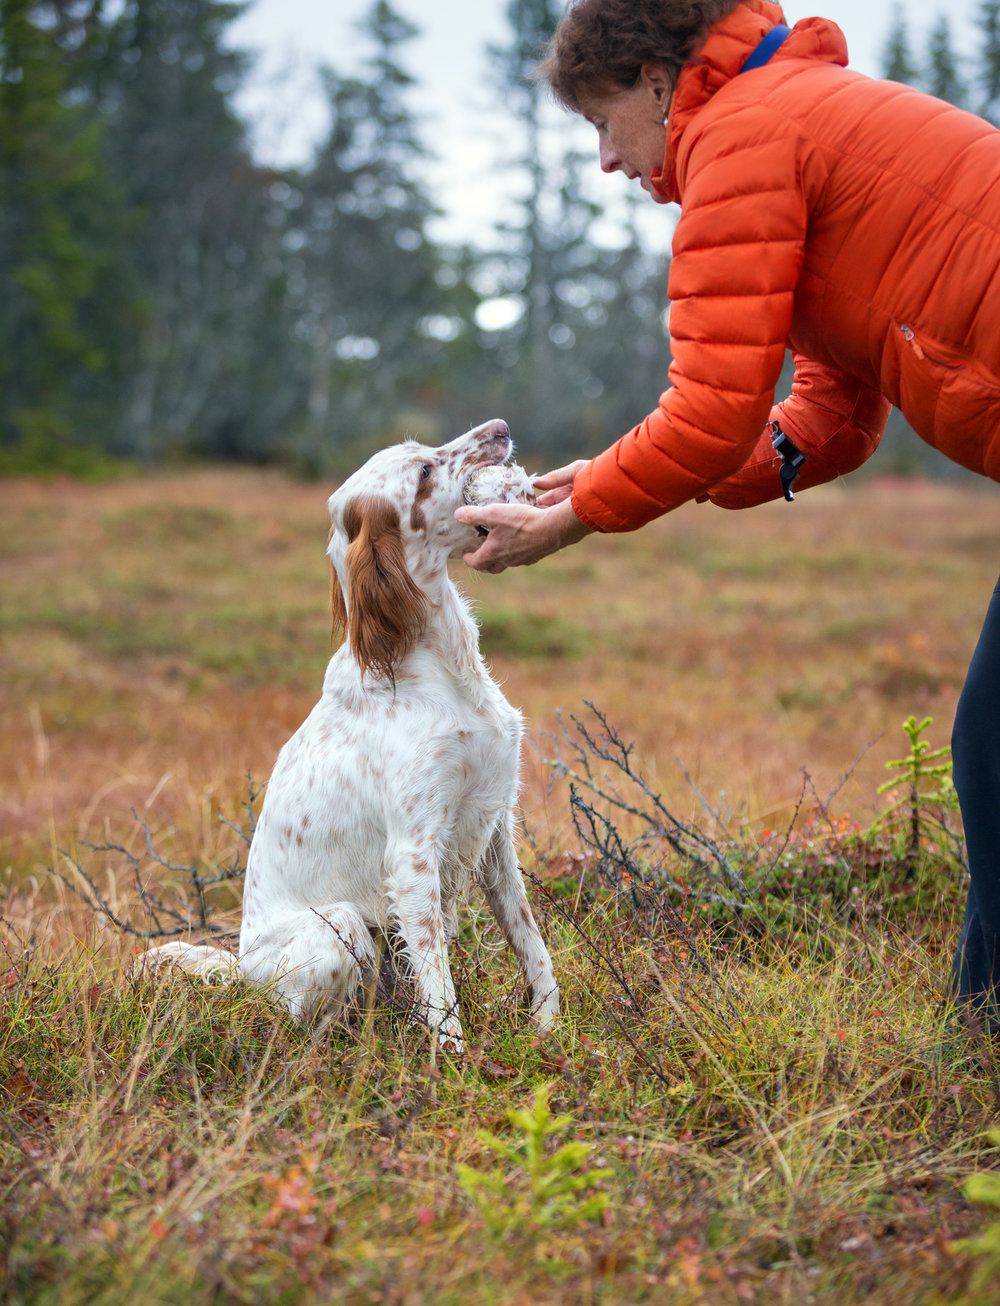 English-Setter-training-retrieve-with-instructor-in-the-Norwegian-mountains-at-autumn,-Oppland-Norway-860591442_1517x1982.jpeg